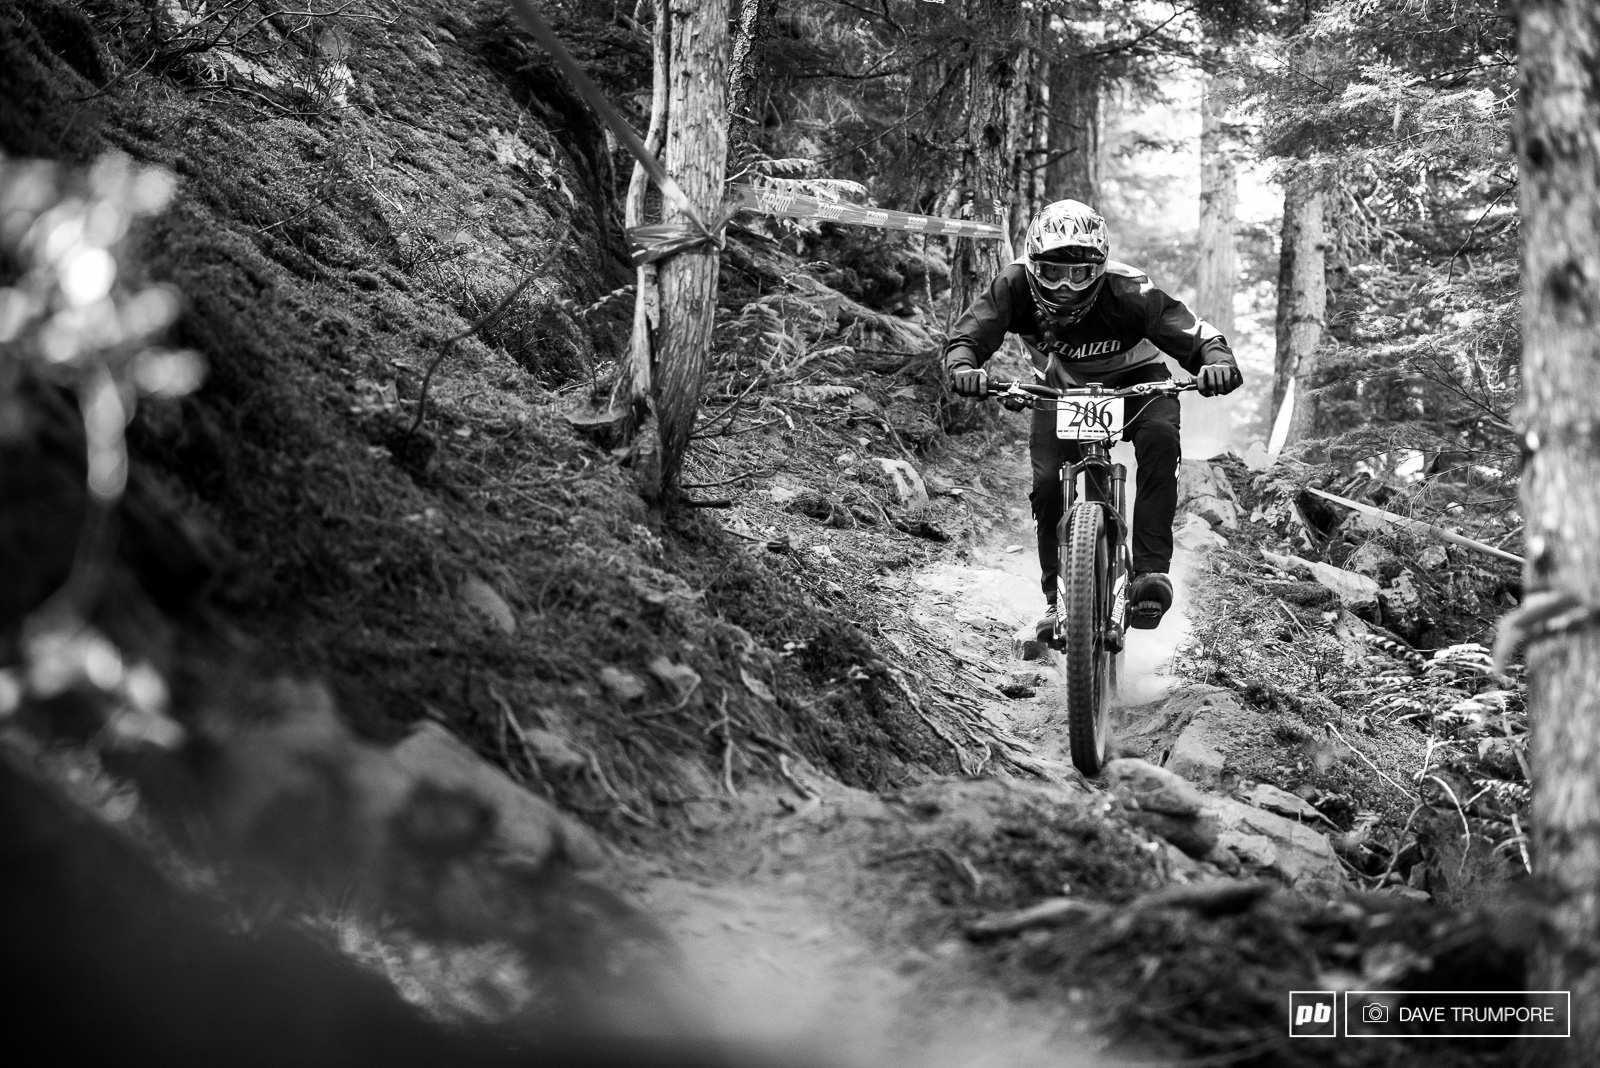 So close to home you could almost call her a local Miranda Miller added another top EWS result to her resume by grabbing 4th.